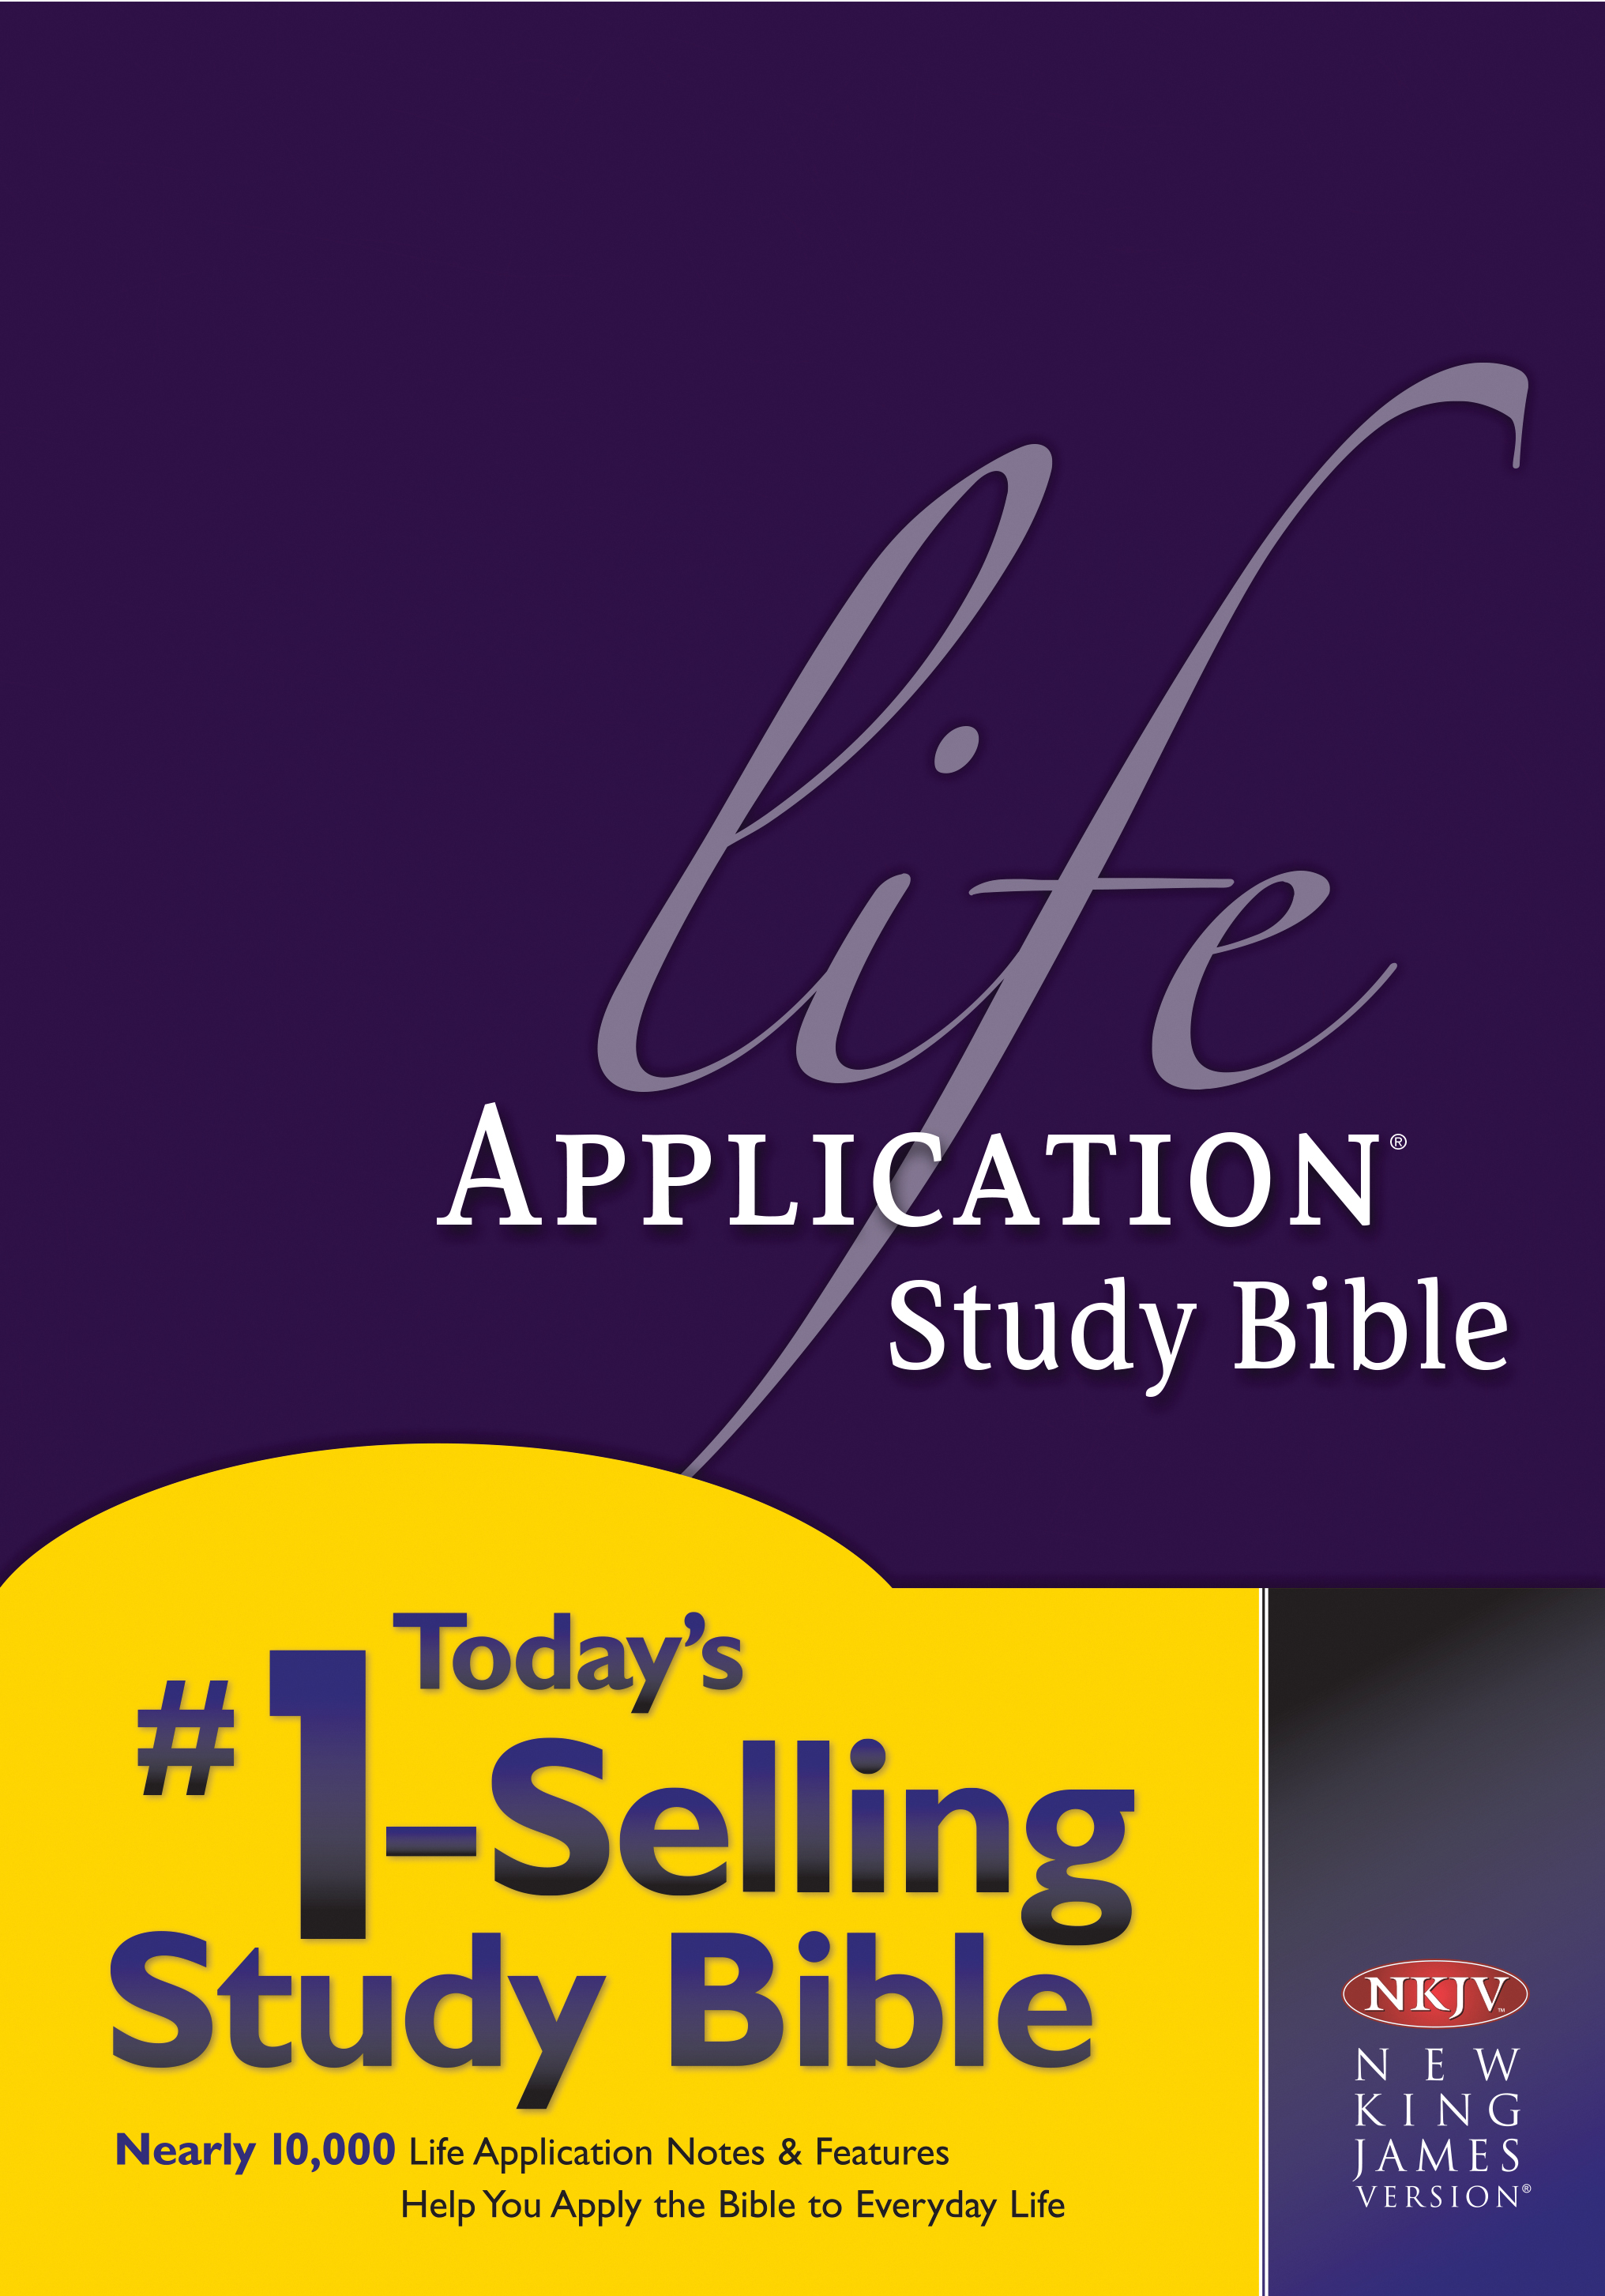 NKJV Life Application Study Bible, Second Edition